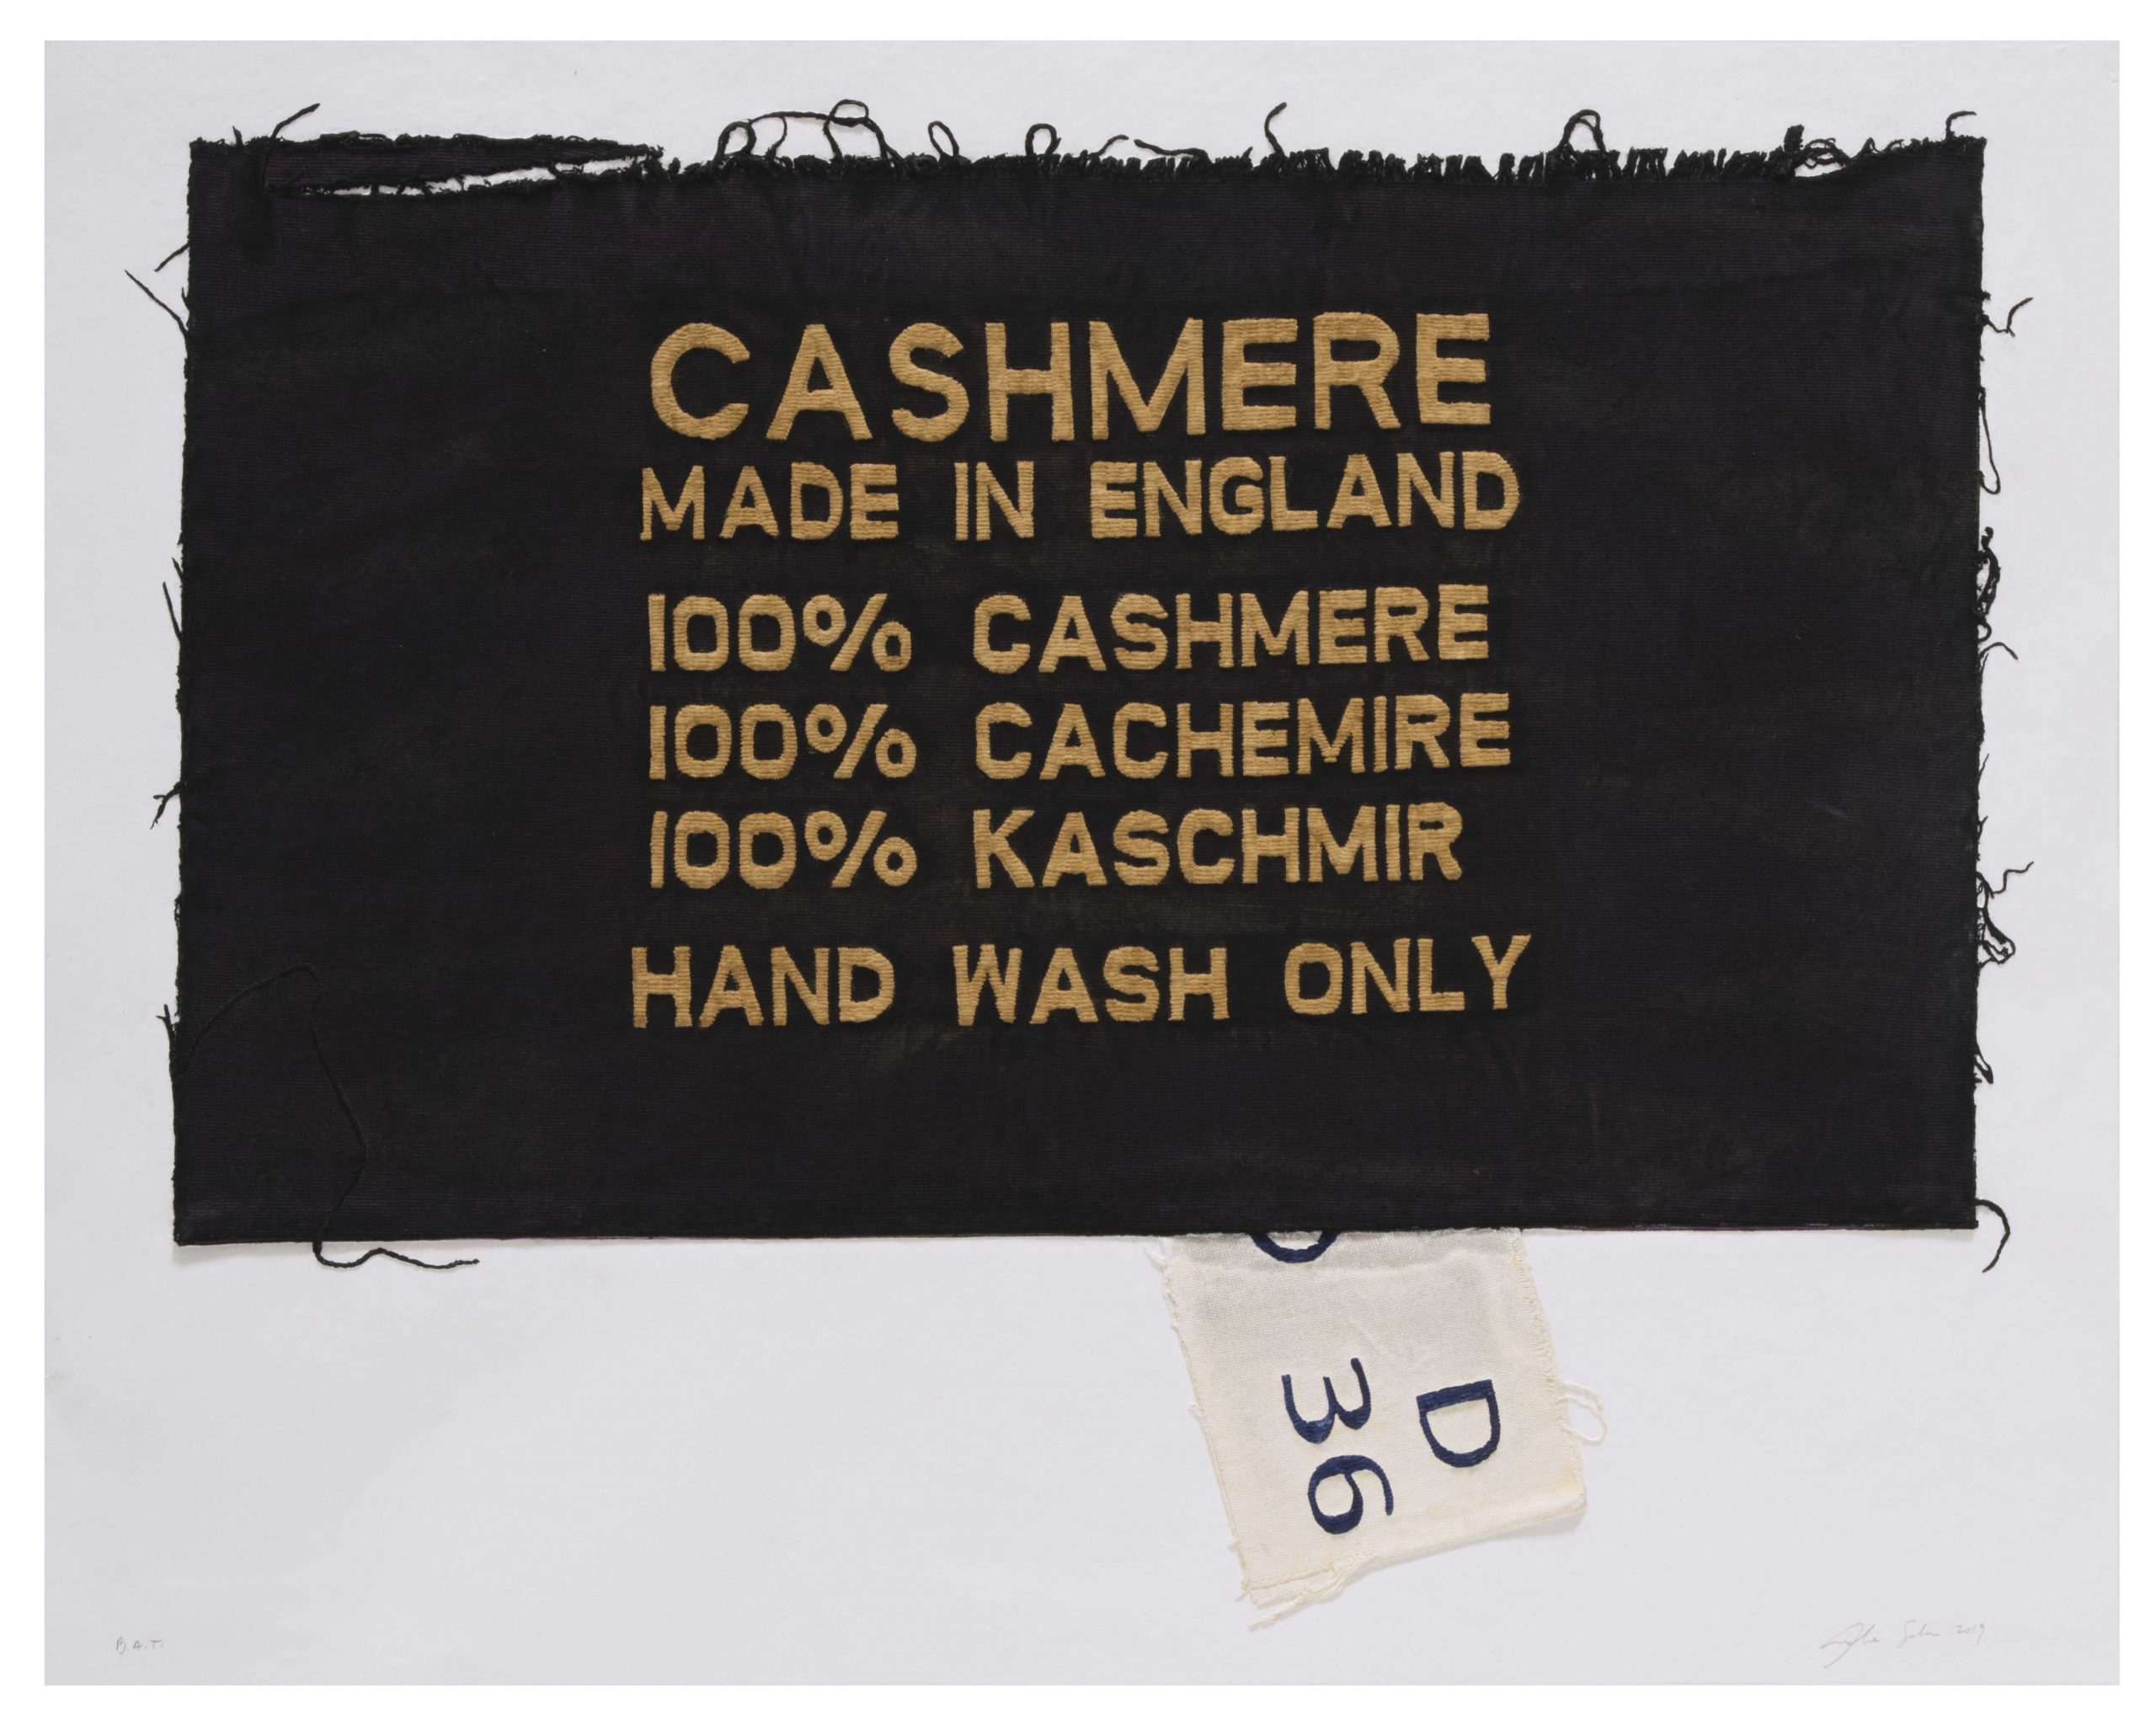 100% Cashmere, Made In England, Clothing Tag by Analia Saban